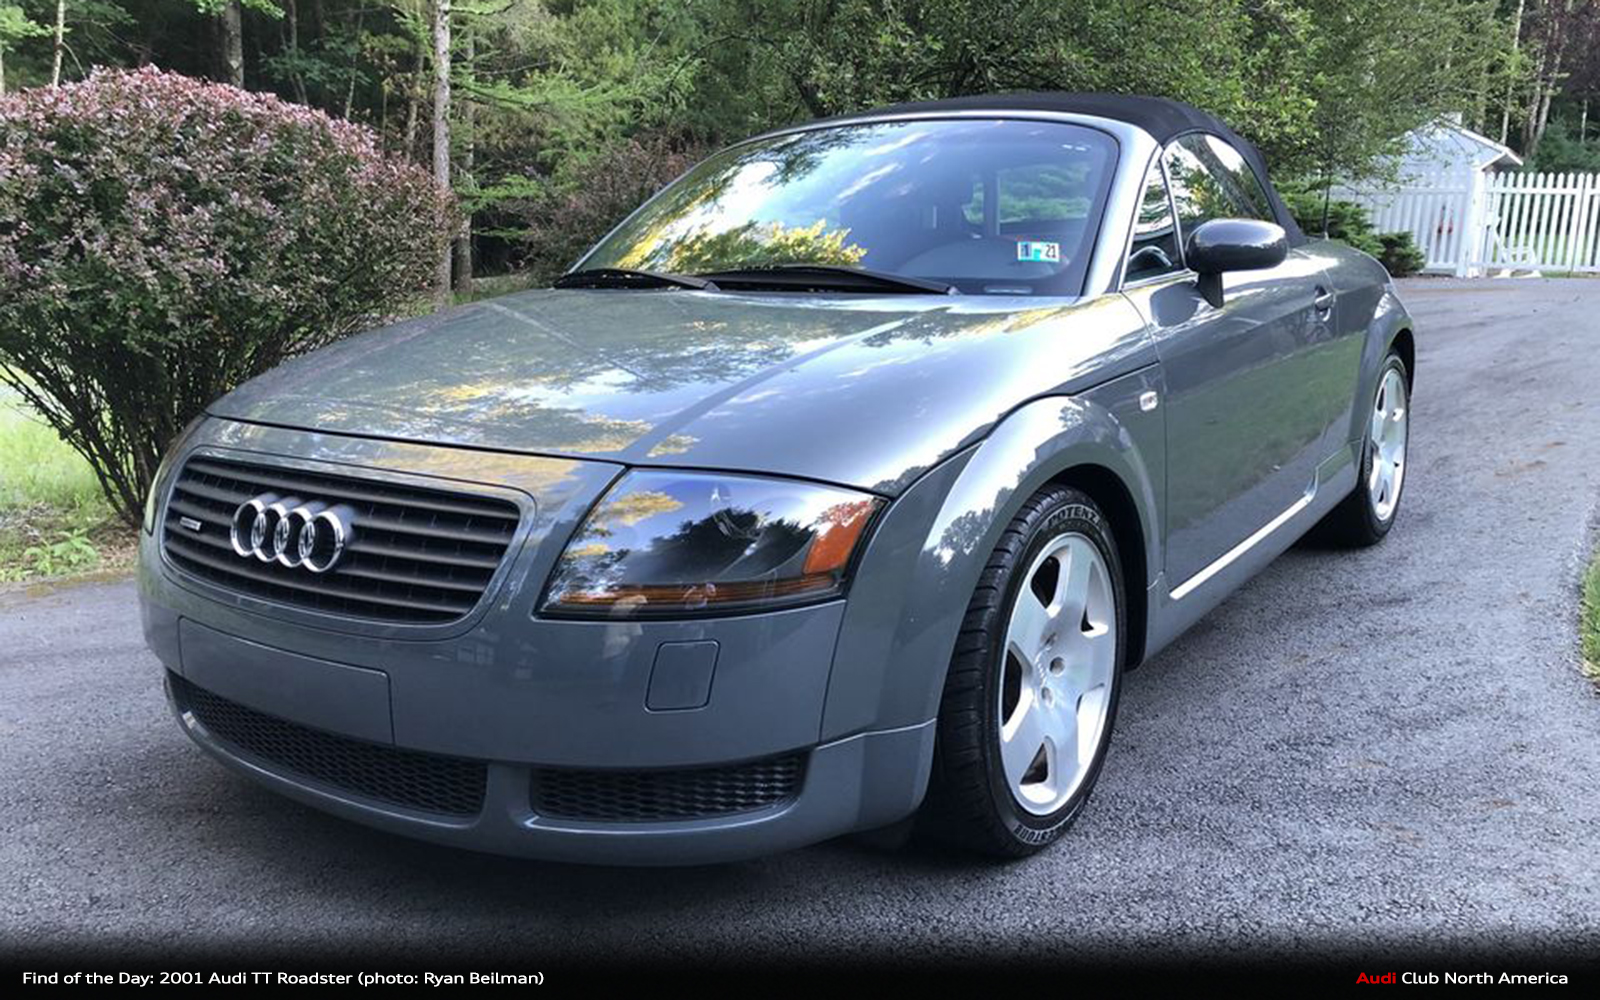 Find of the Day: 2001 Audi TT Roadster